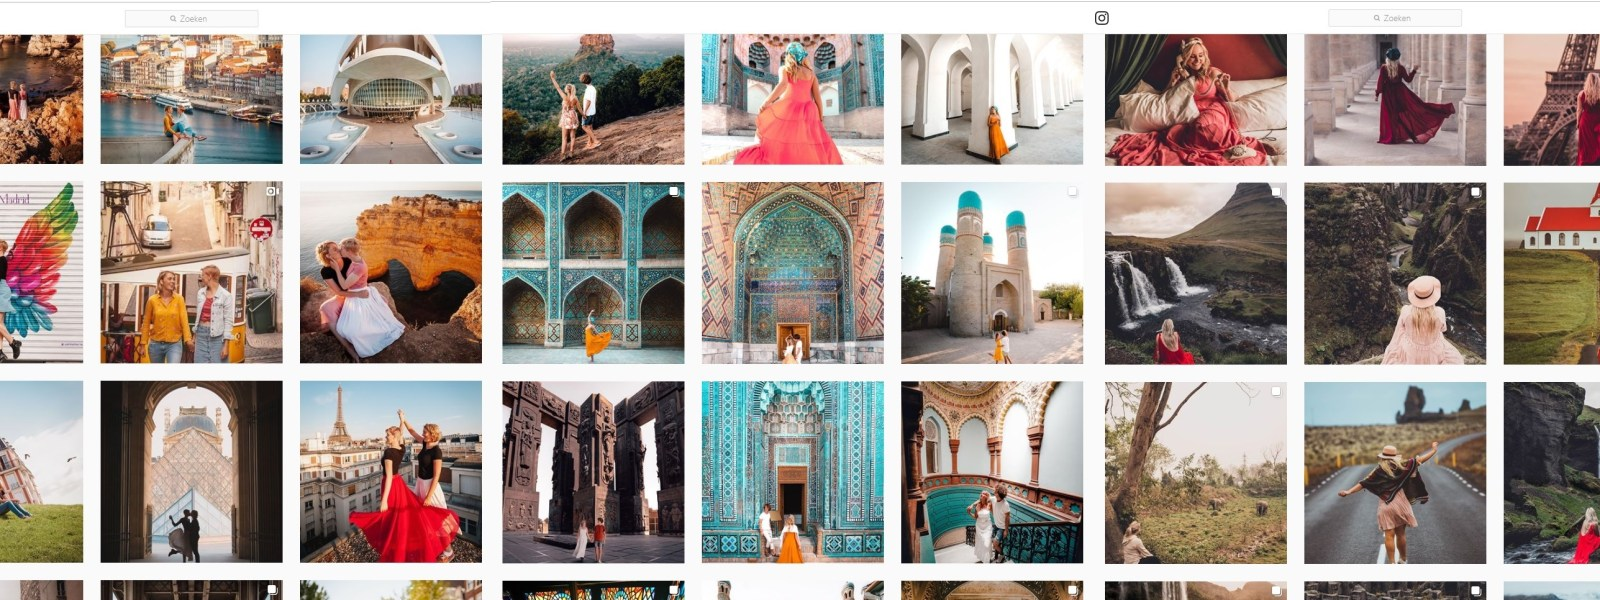 The 15 best Dutch travel blogs and instagrams